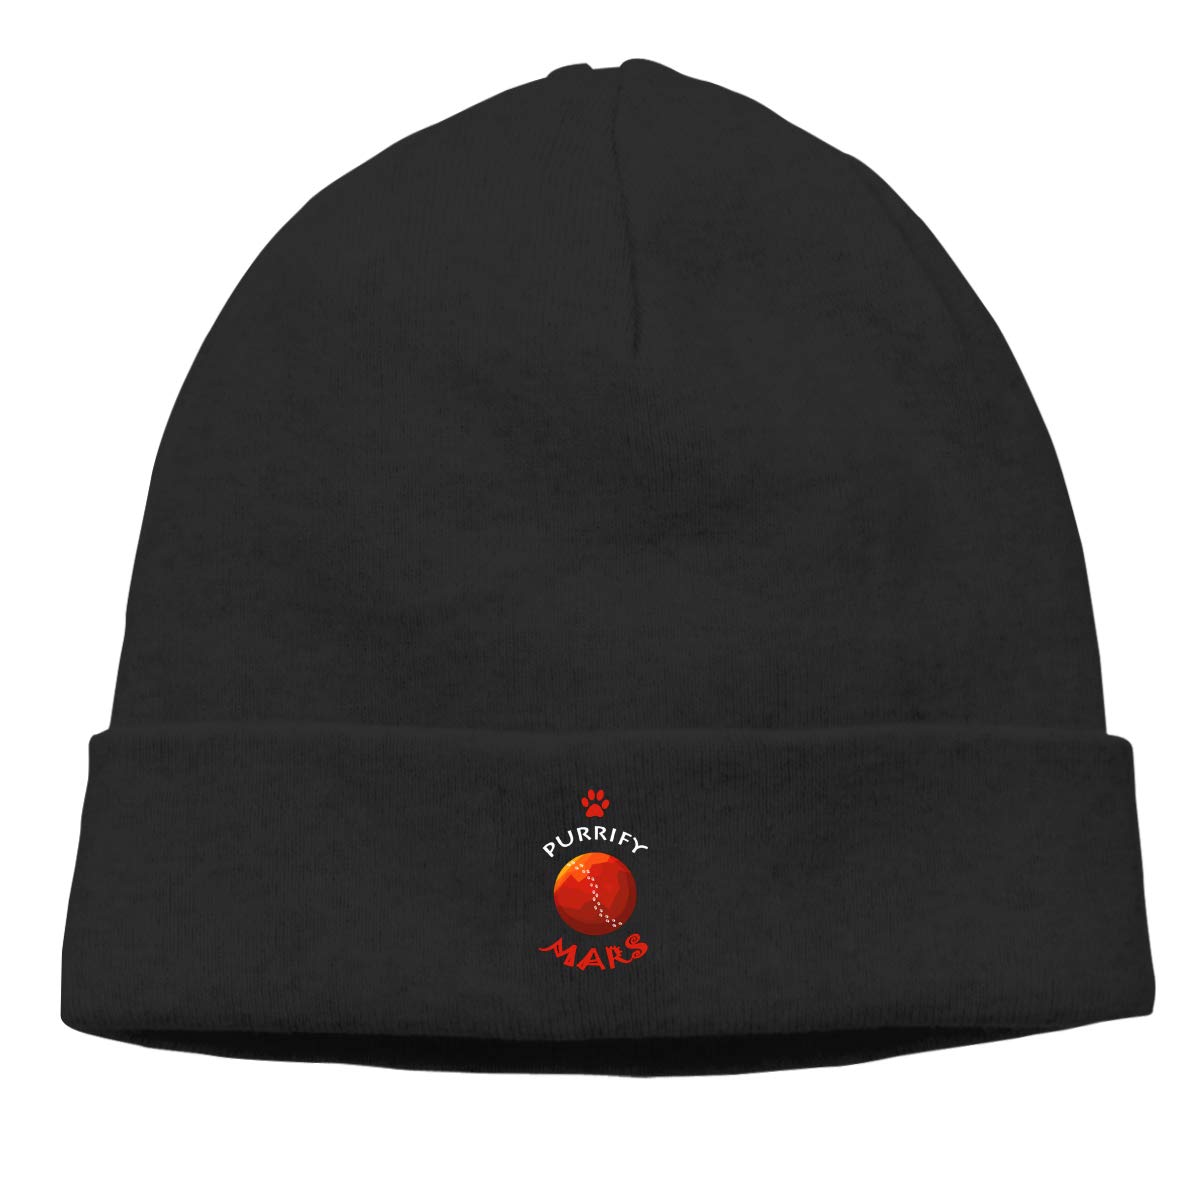 Purrify Mars Mens/&Womens Deliciously Soft Daily Serious Beanies